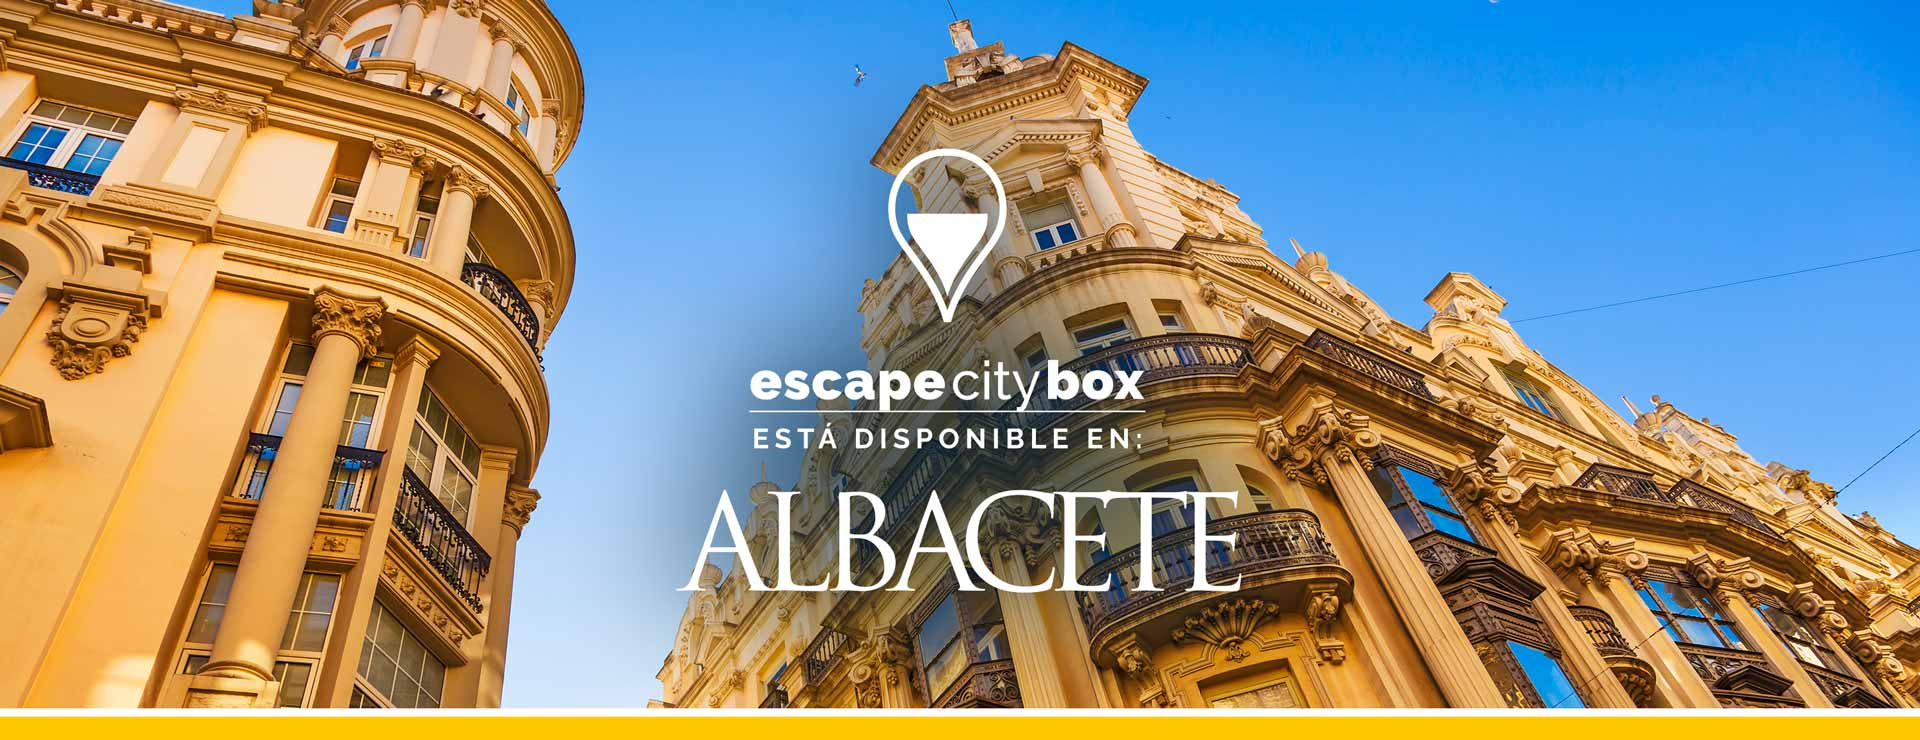 City Escape en Albacete